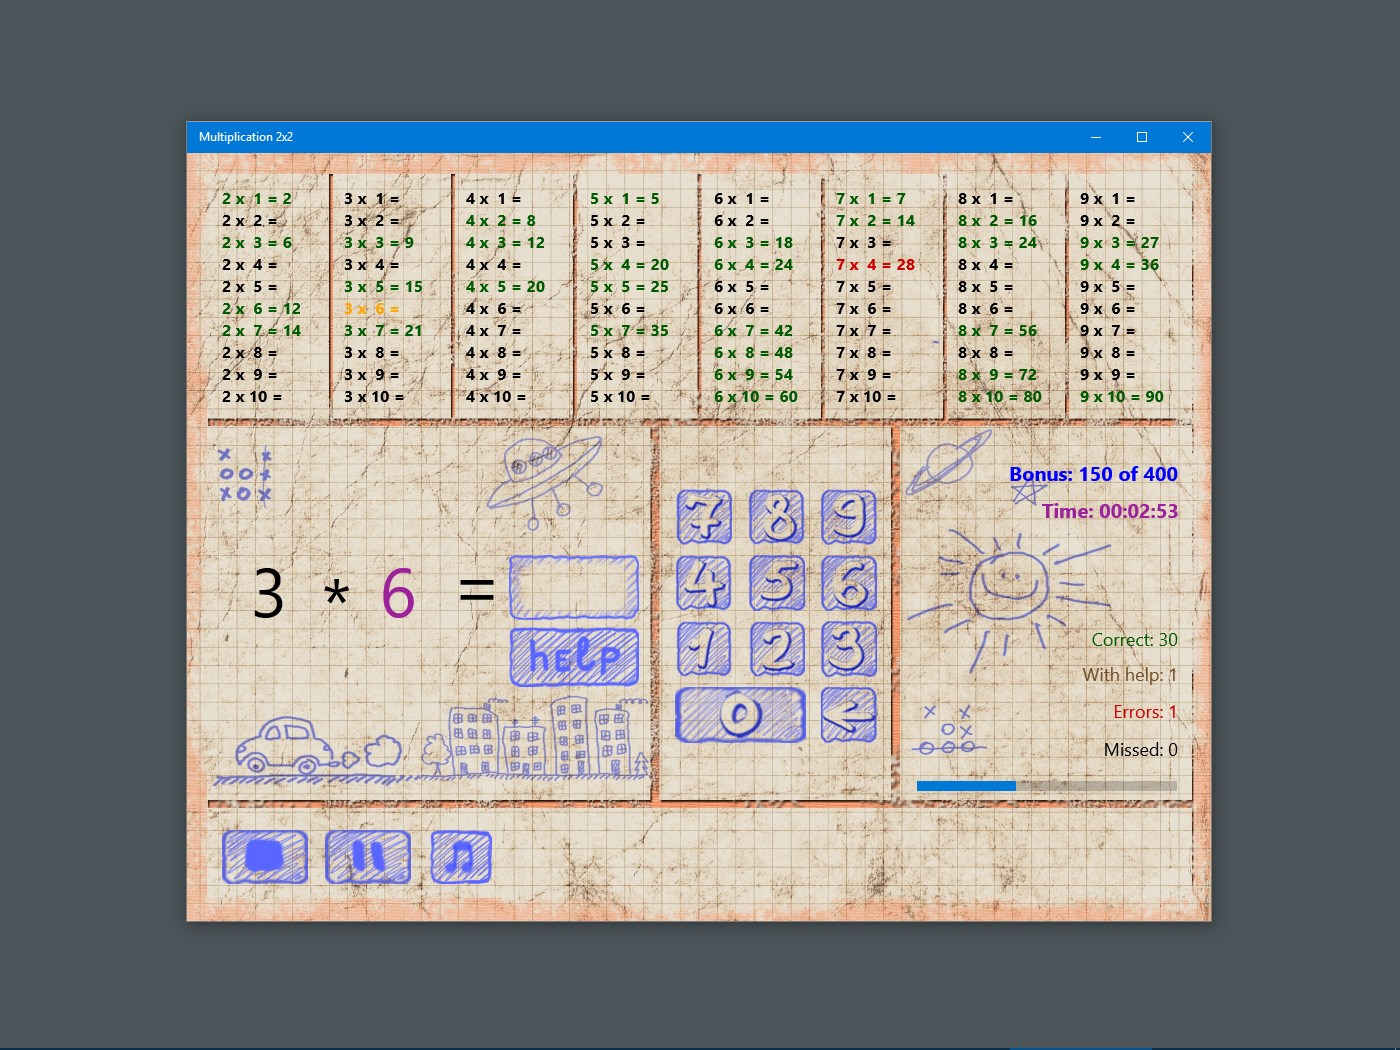 Multiplication 2x2 Windows Apps Appagg Images, Photos, Reviews